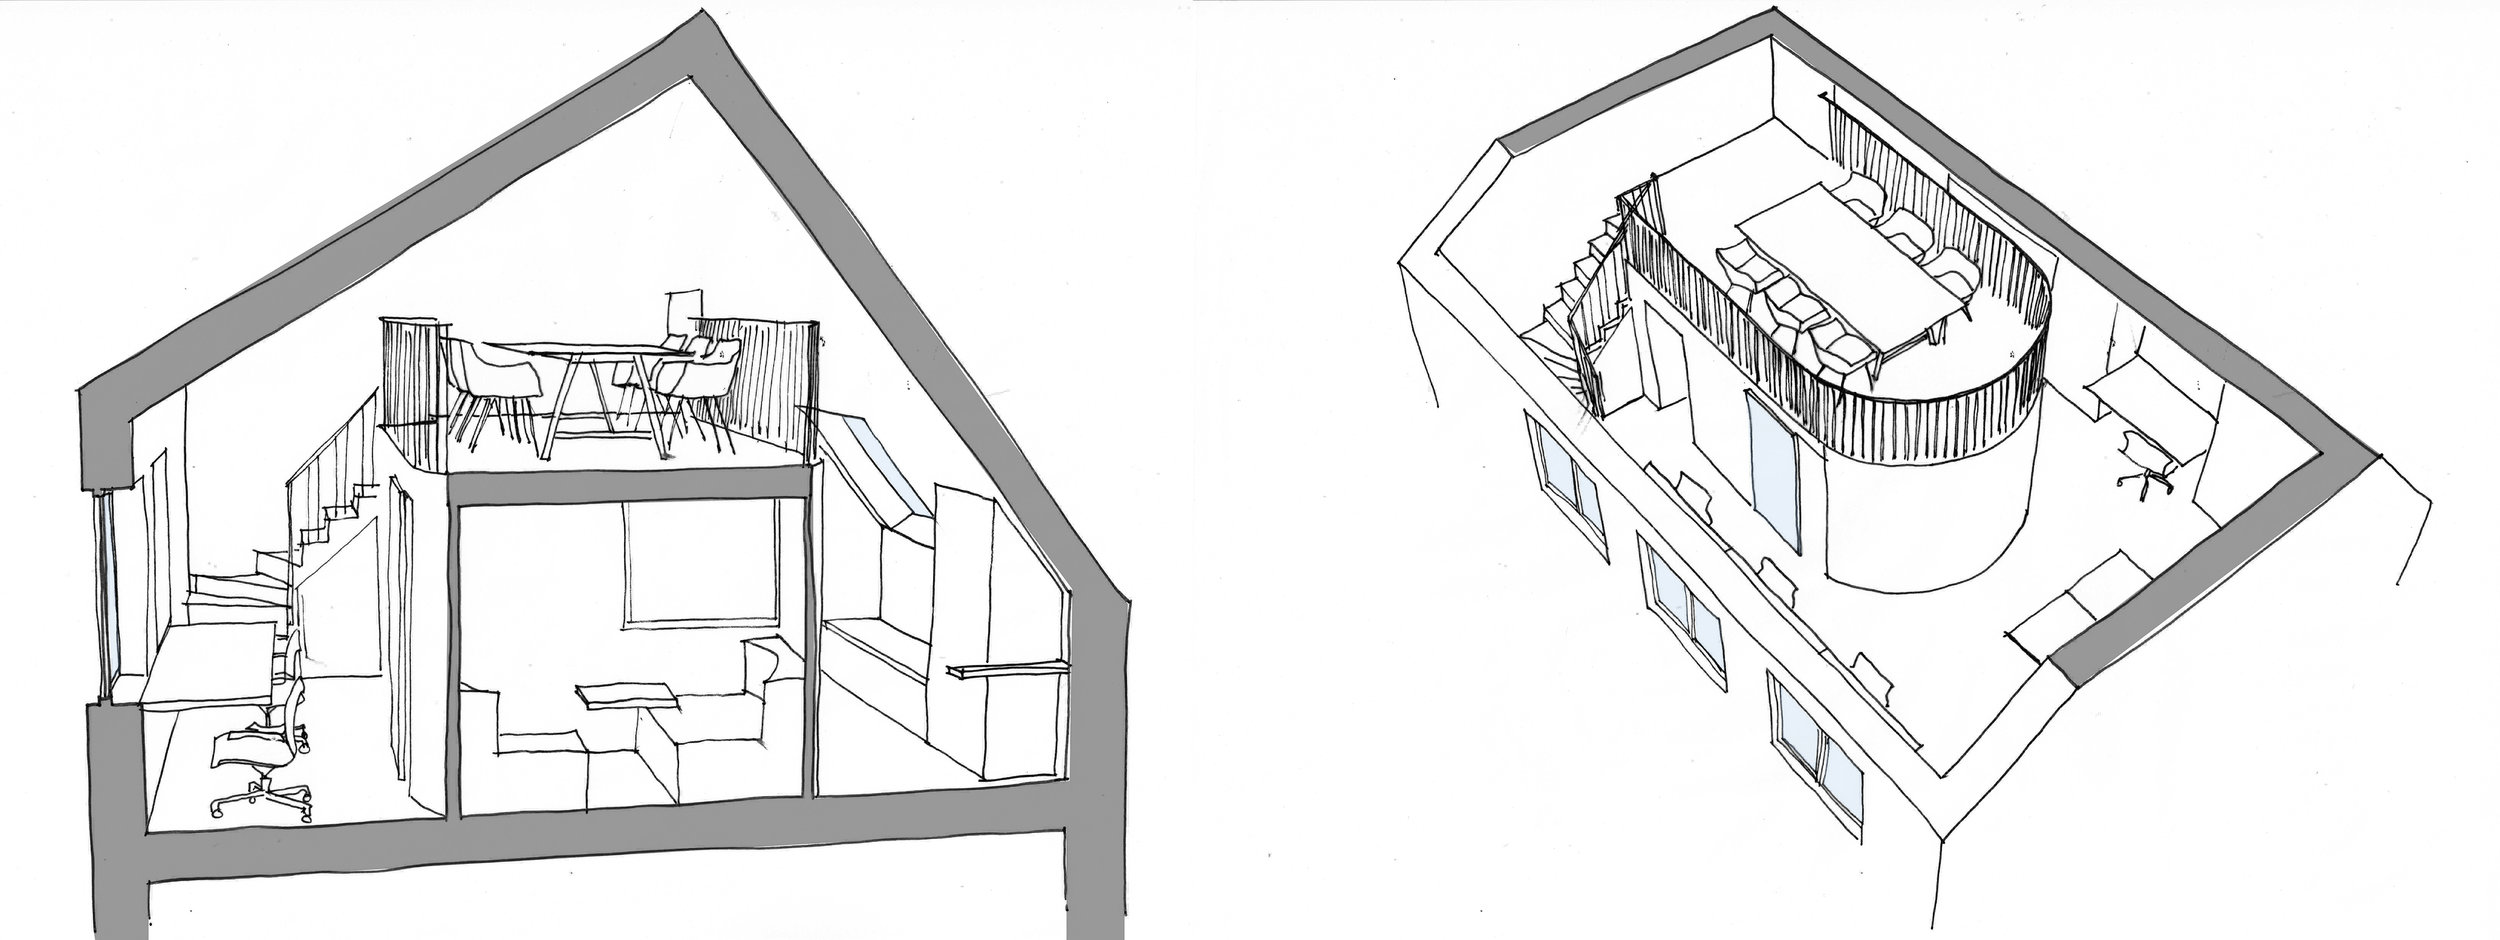 Cambridge court: Mezzanine for meeting office creating a separate environment from the rest of the office.